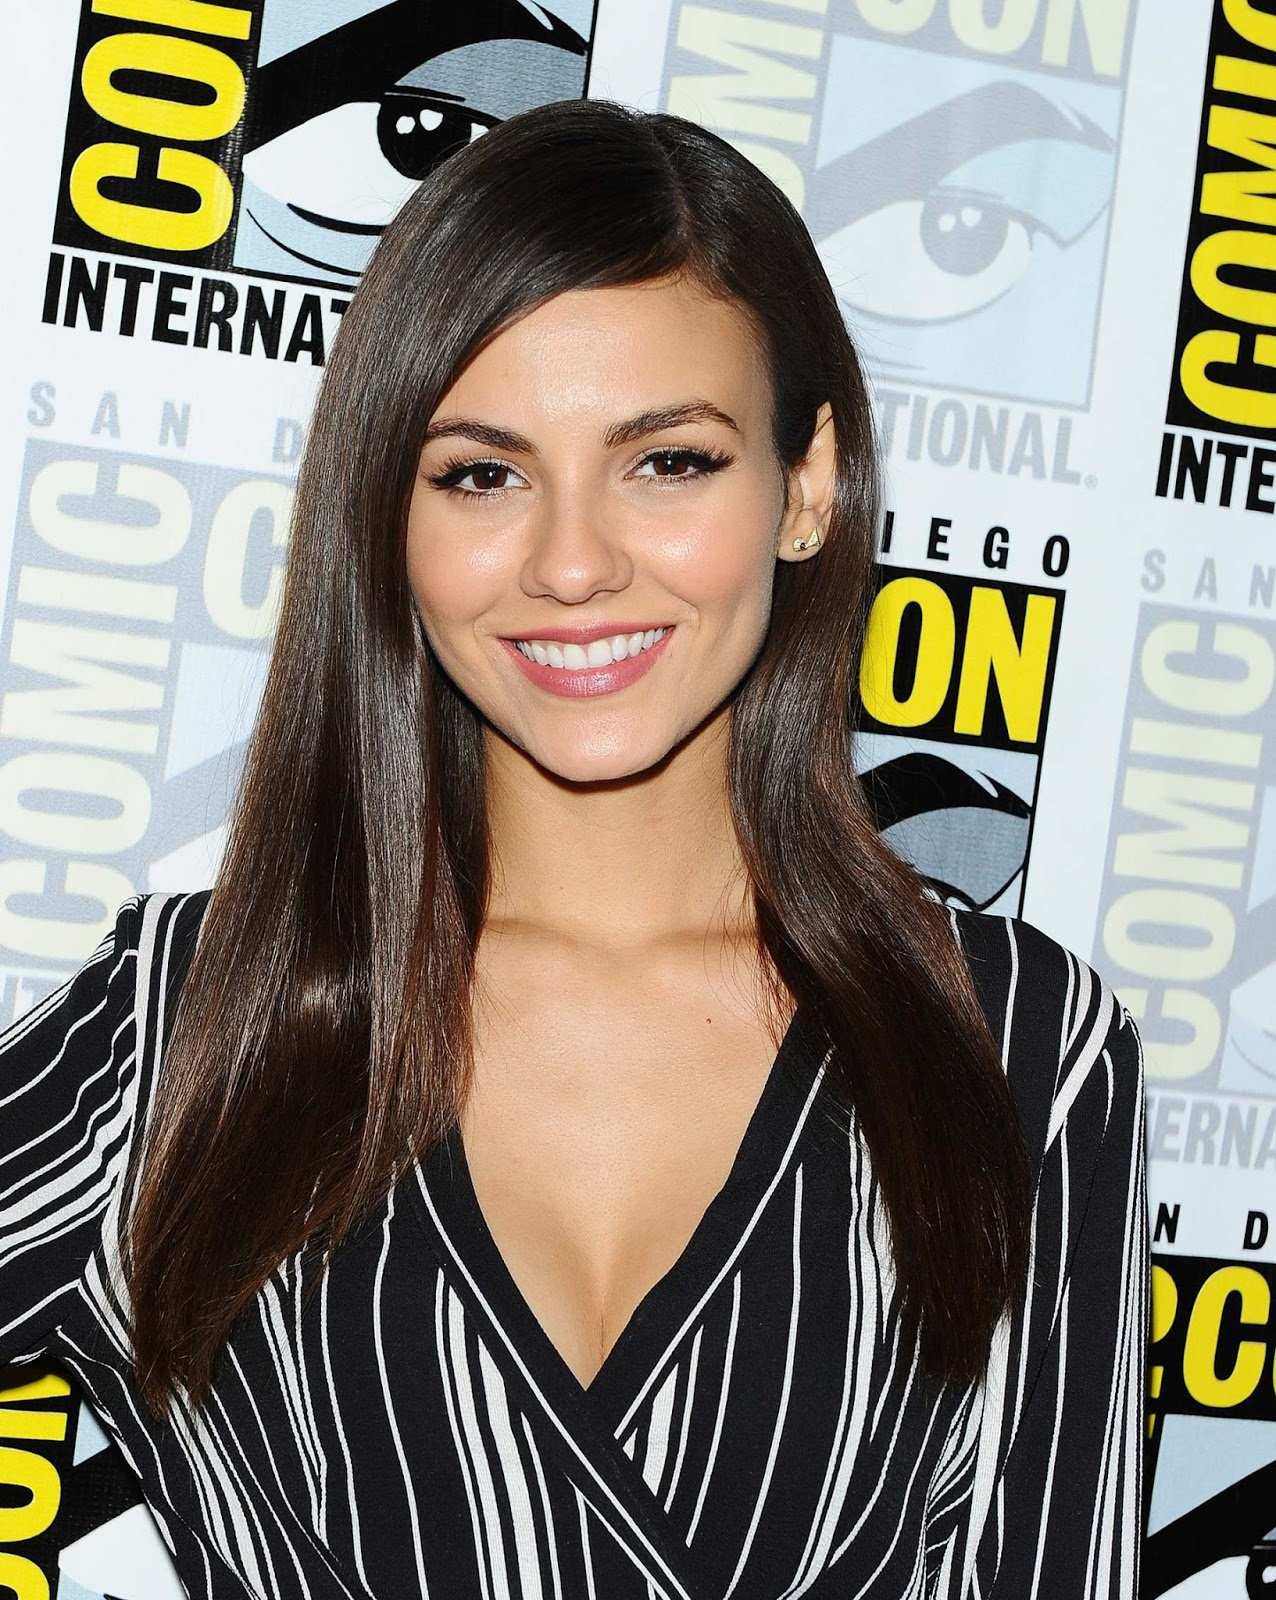 Victoria Justice wears striped ensemble for Comic-Con 2016